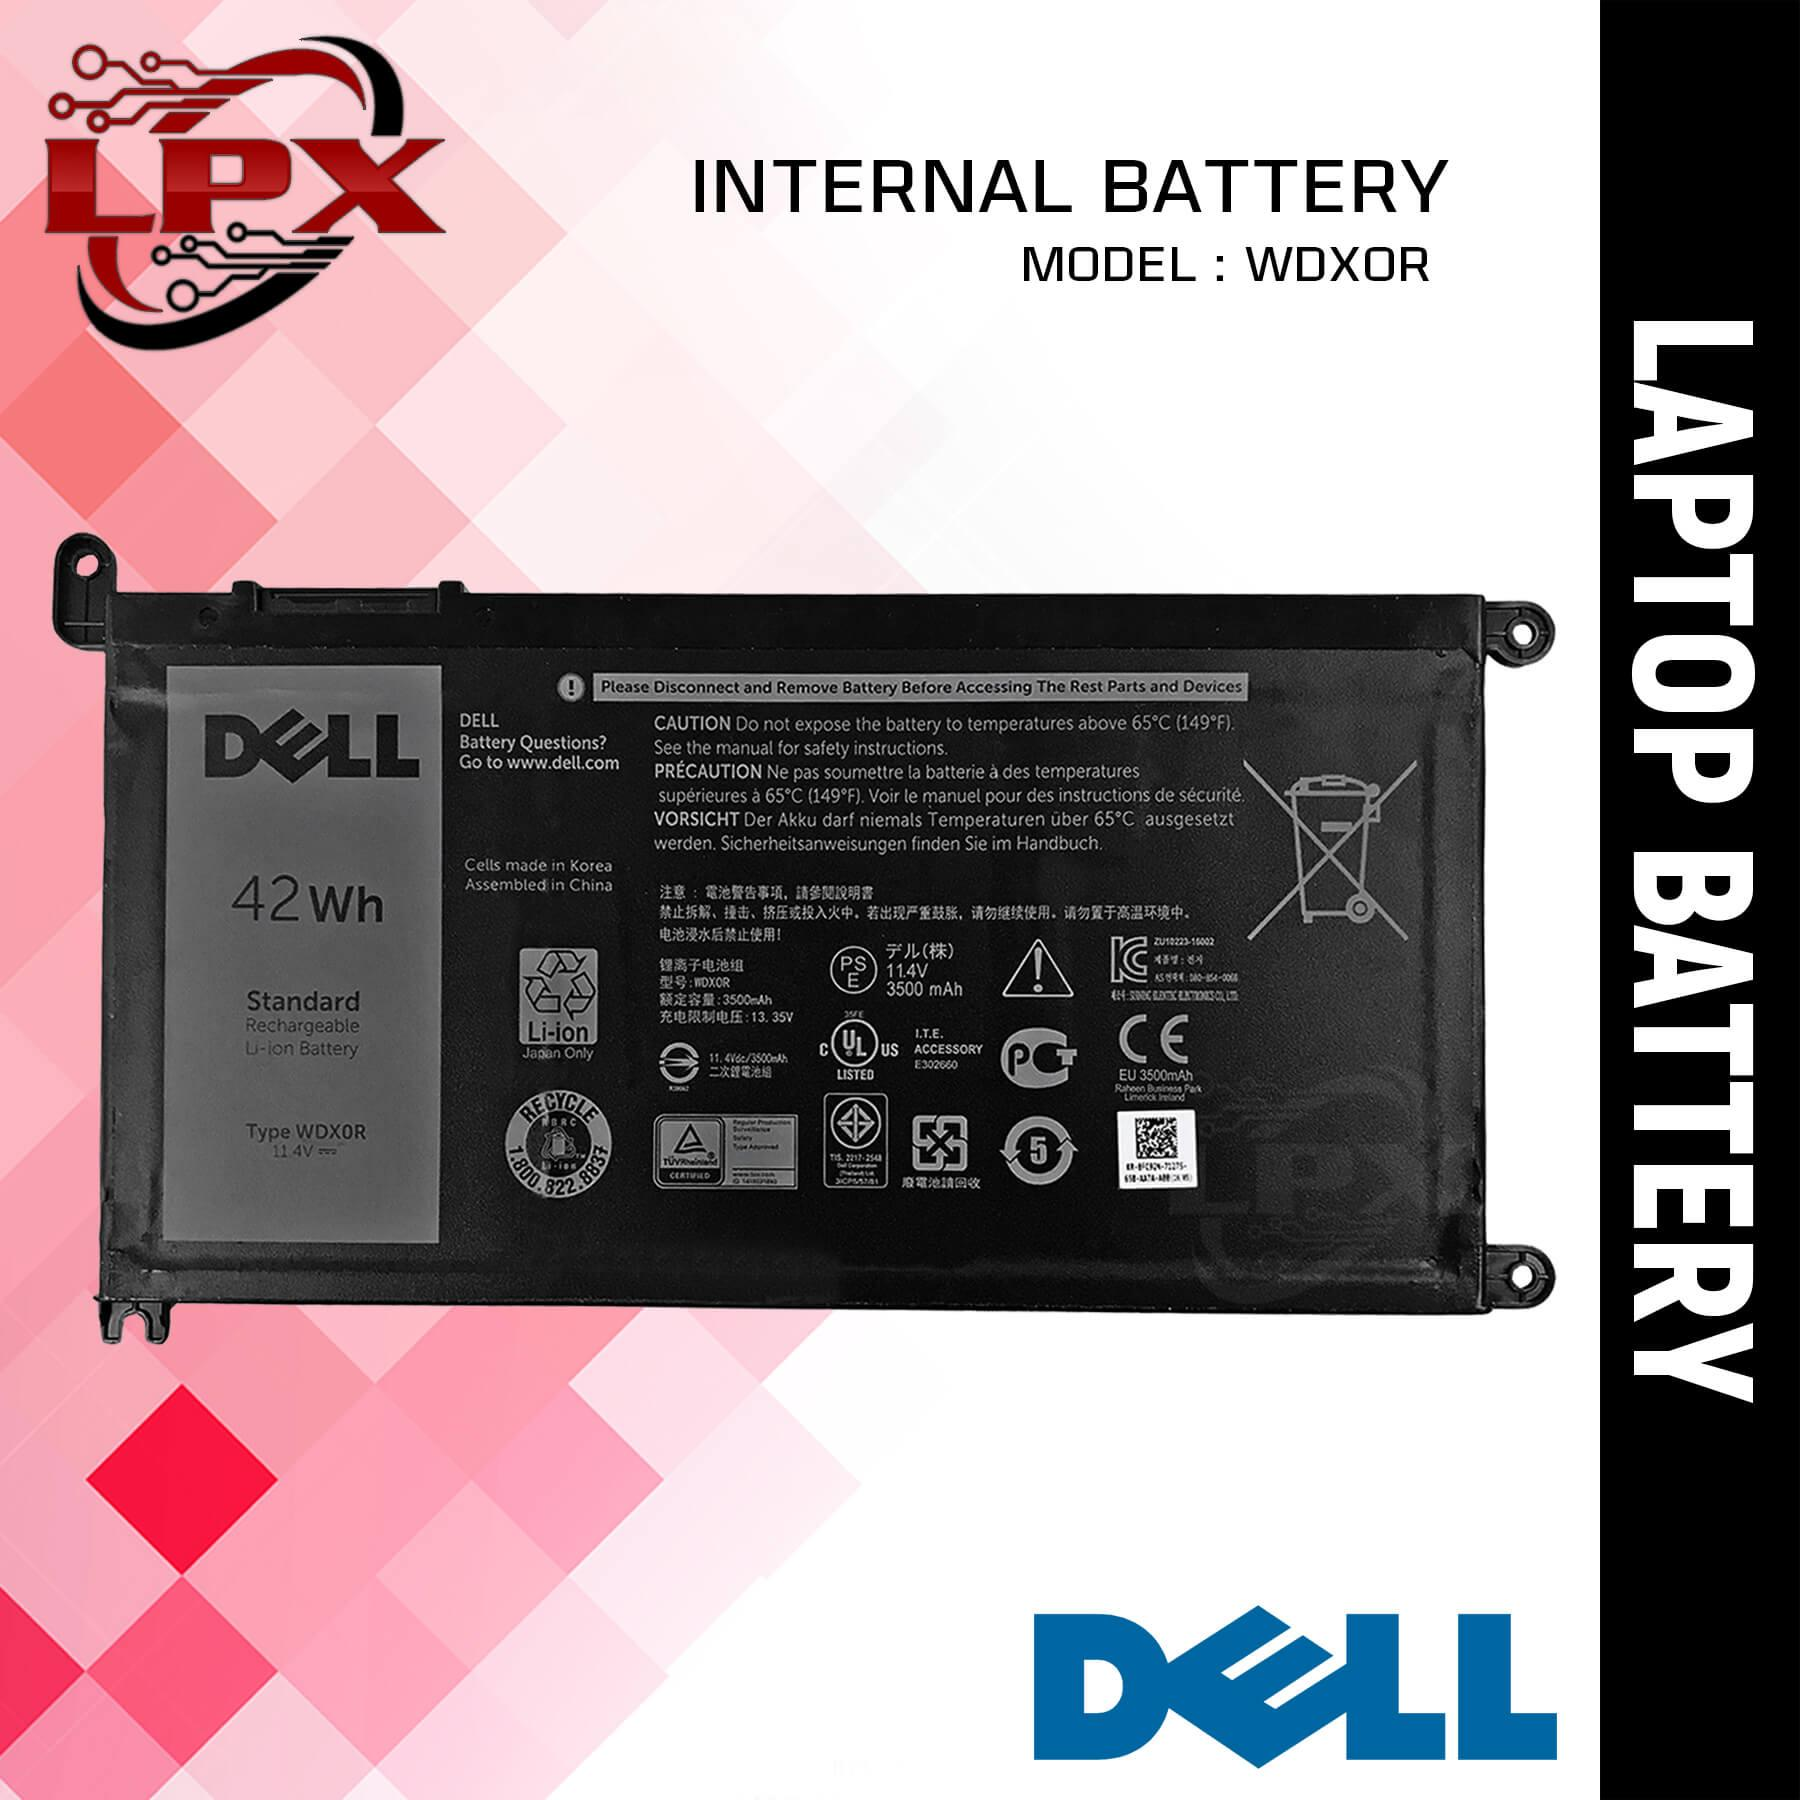 Laptop Battery WDX0R for Dell Inspiron 15 5538, 15 5567, 15 5568, 15 5578,  15 7000, 15 7560, 14-7460, 3189, 14 5468, 14-5468D-1305S, 13 5000, 13 5368,